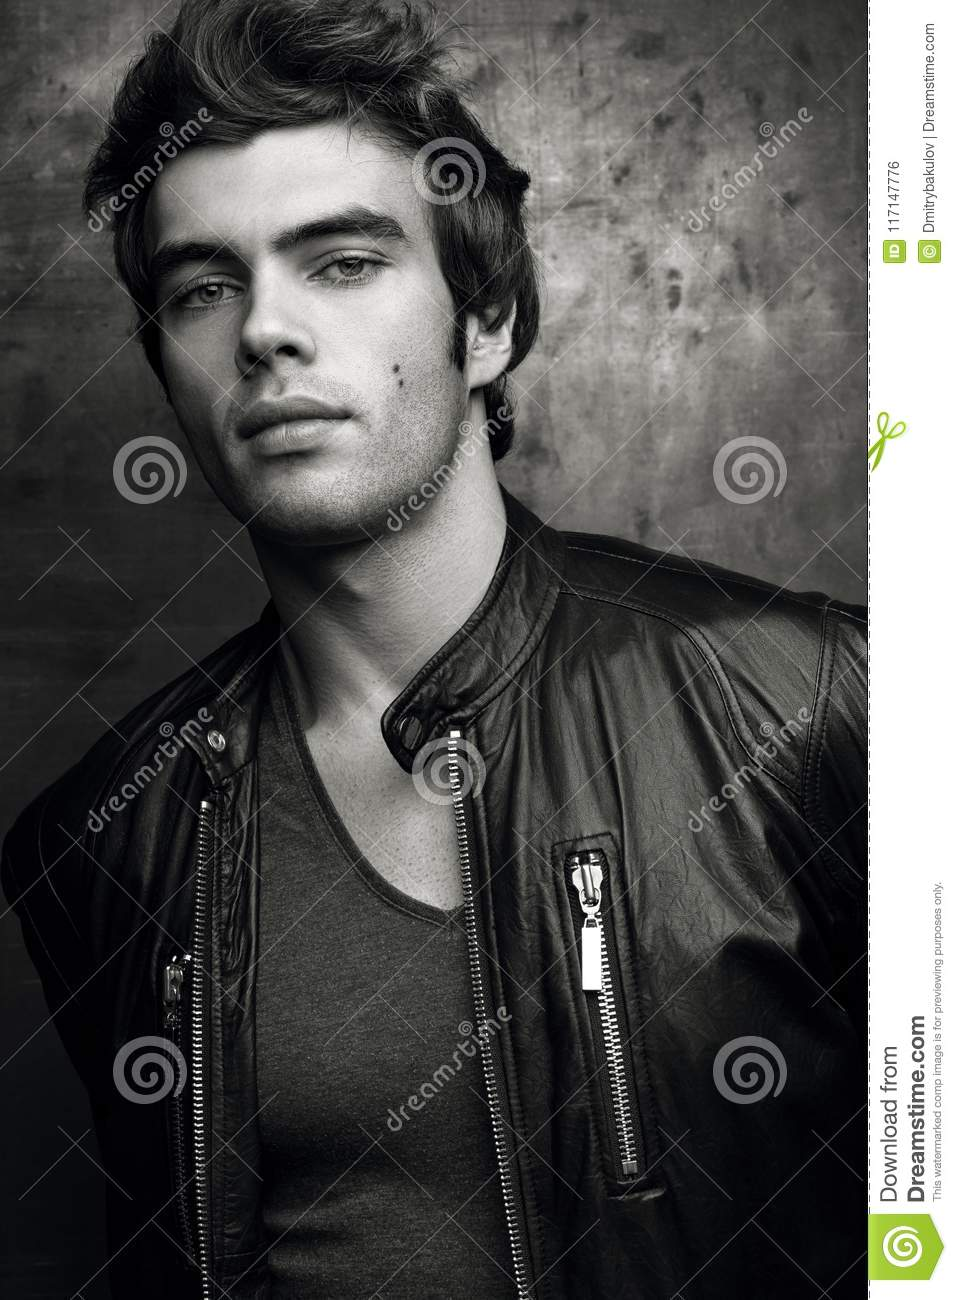 Stylish Young Man In Black Leather Jacket Contrast Black And White